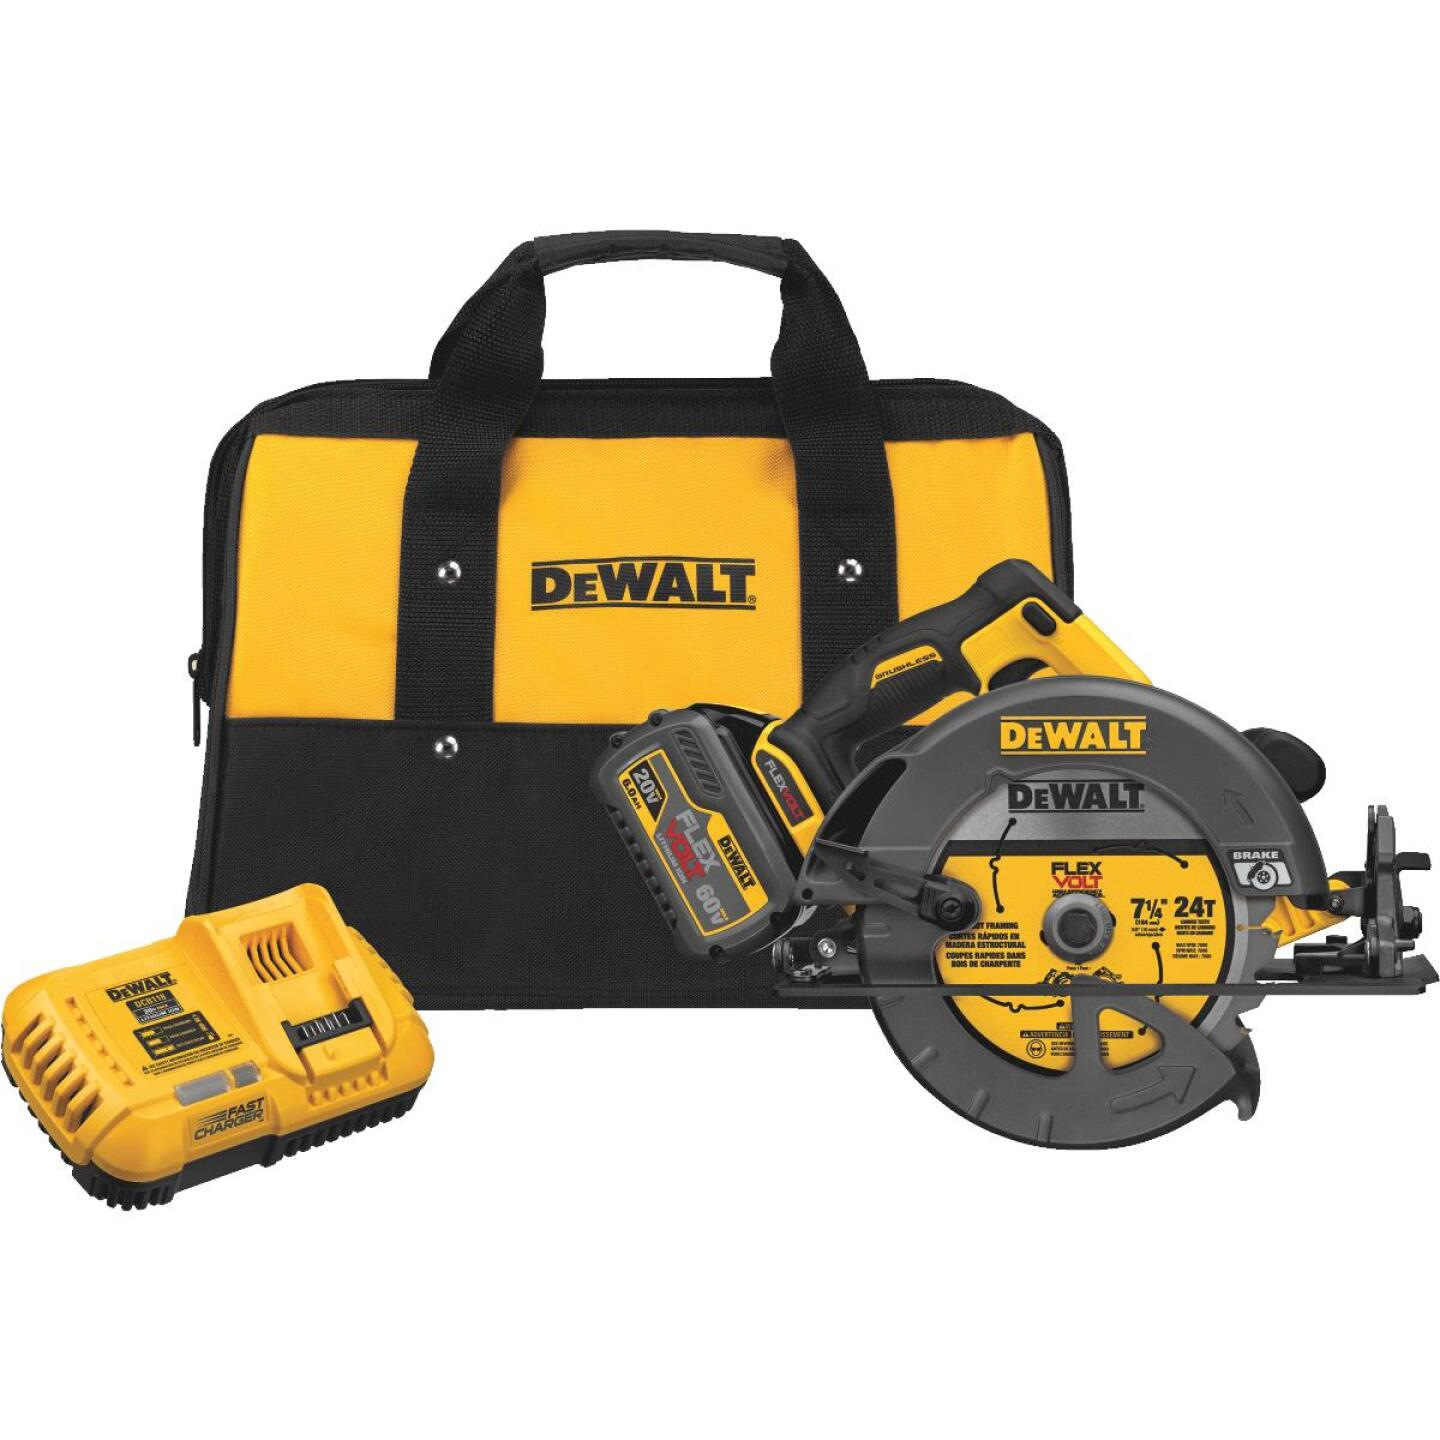 DeWalt Flexvolt 60 Volt MAX Lithium-Ion Brushless 7-1/4 In. Cordless Circular Saw with Brake Kit Image 1